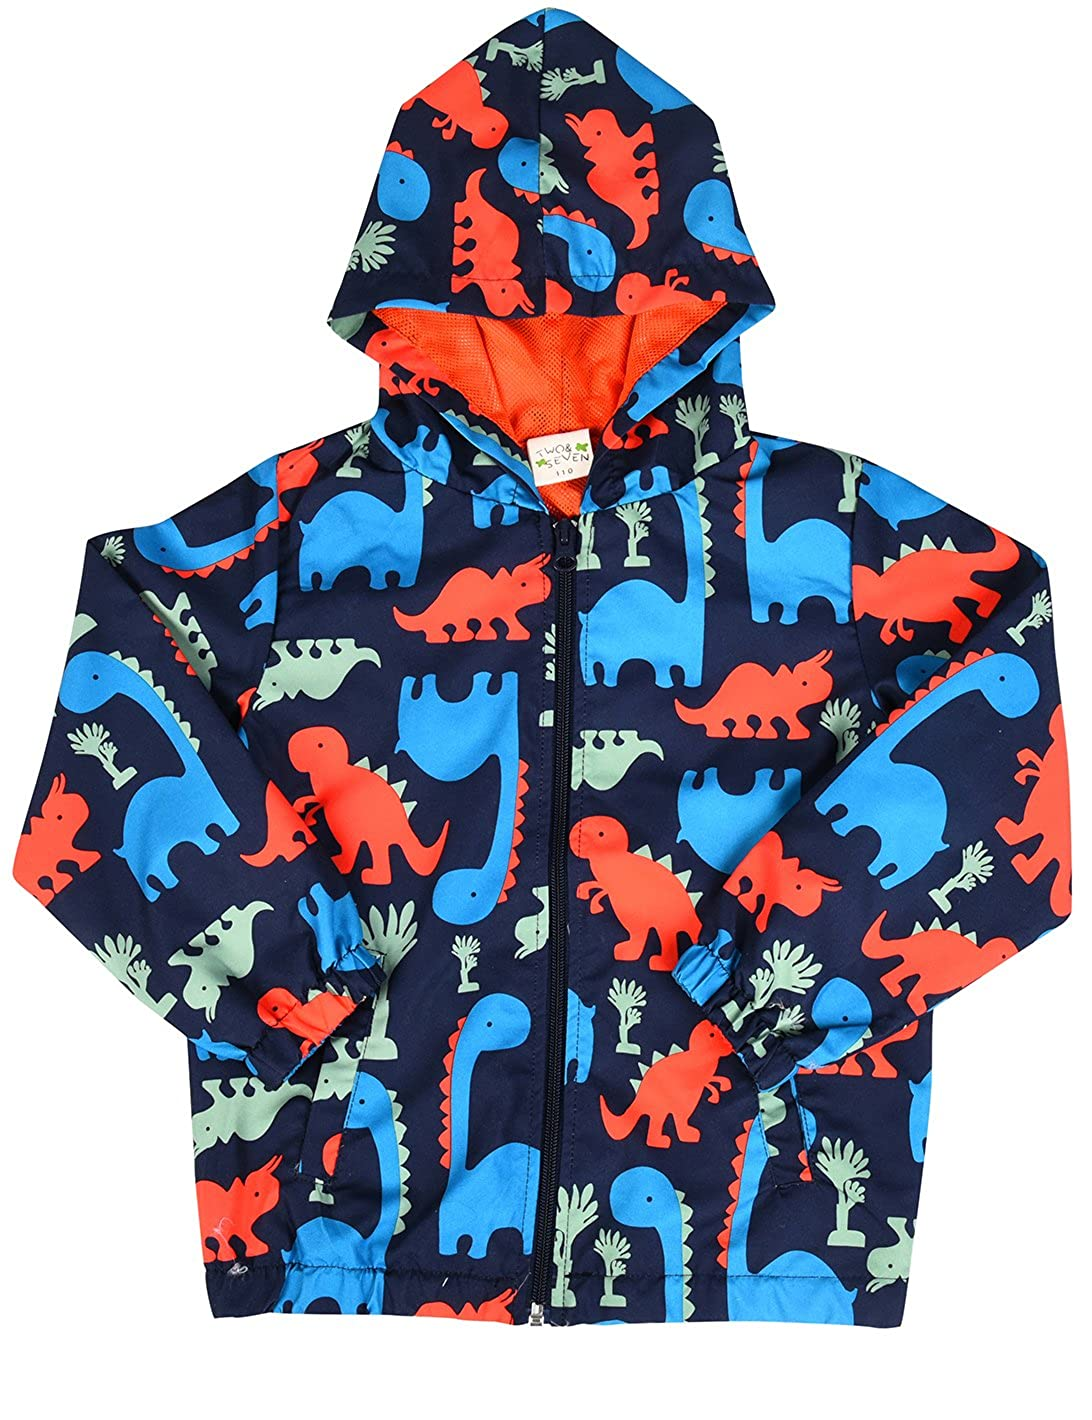 SORREL Toddler Kids Long Sleeves Dinosaur Zip-Up Hoodie Casual Jacket Boys Coat Size 2 3 4 5 6 7 8 T